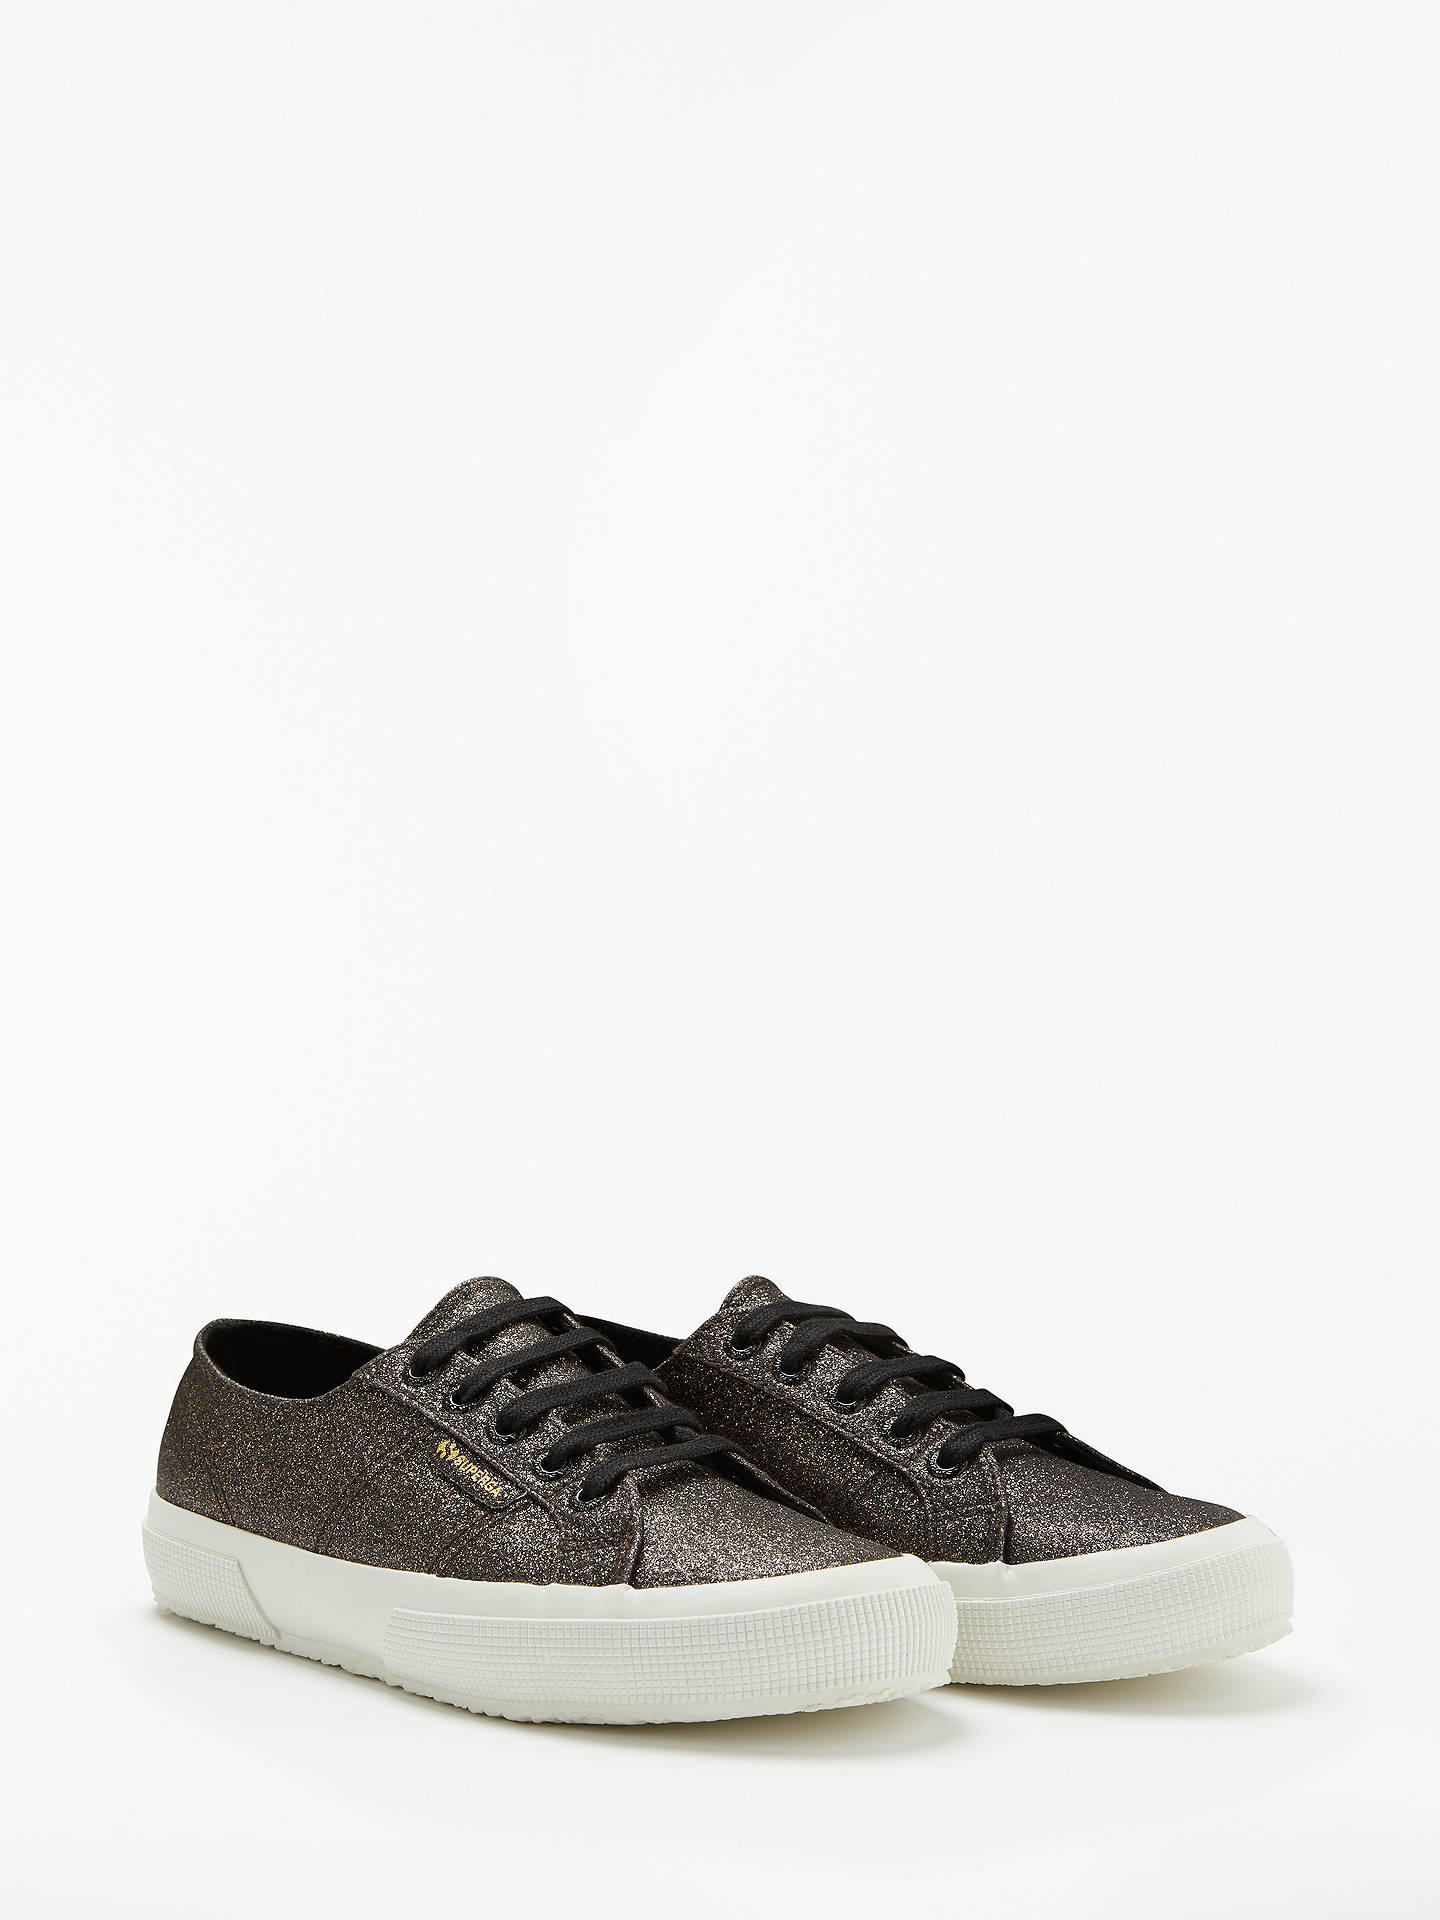 Buy Superga 2750 Mirco Glitter Lace Up Trainers, Black, 6.5 Online at johnlewis.com